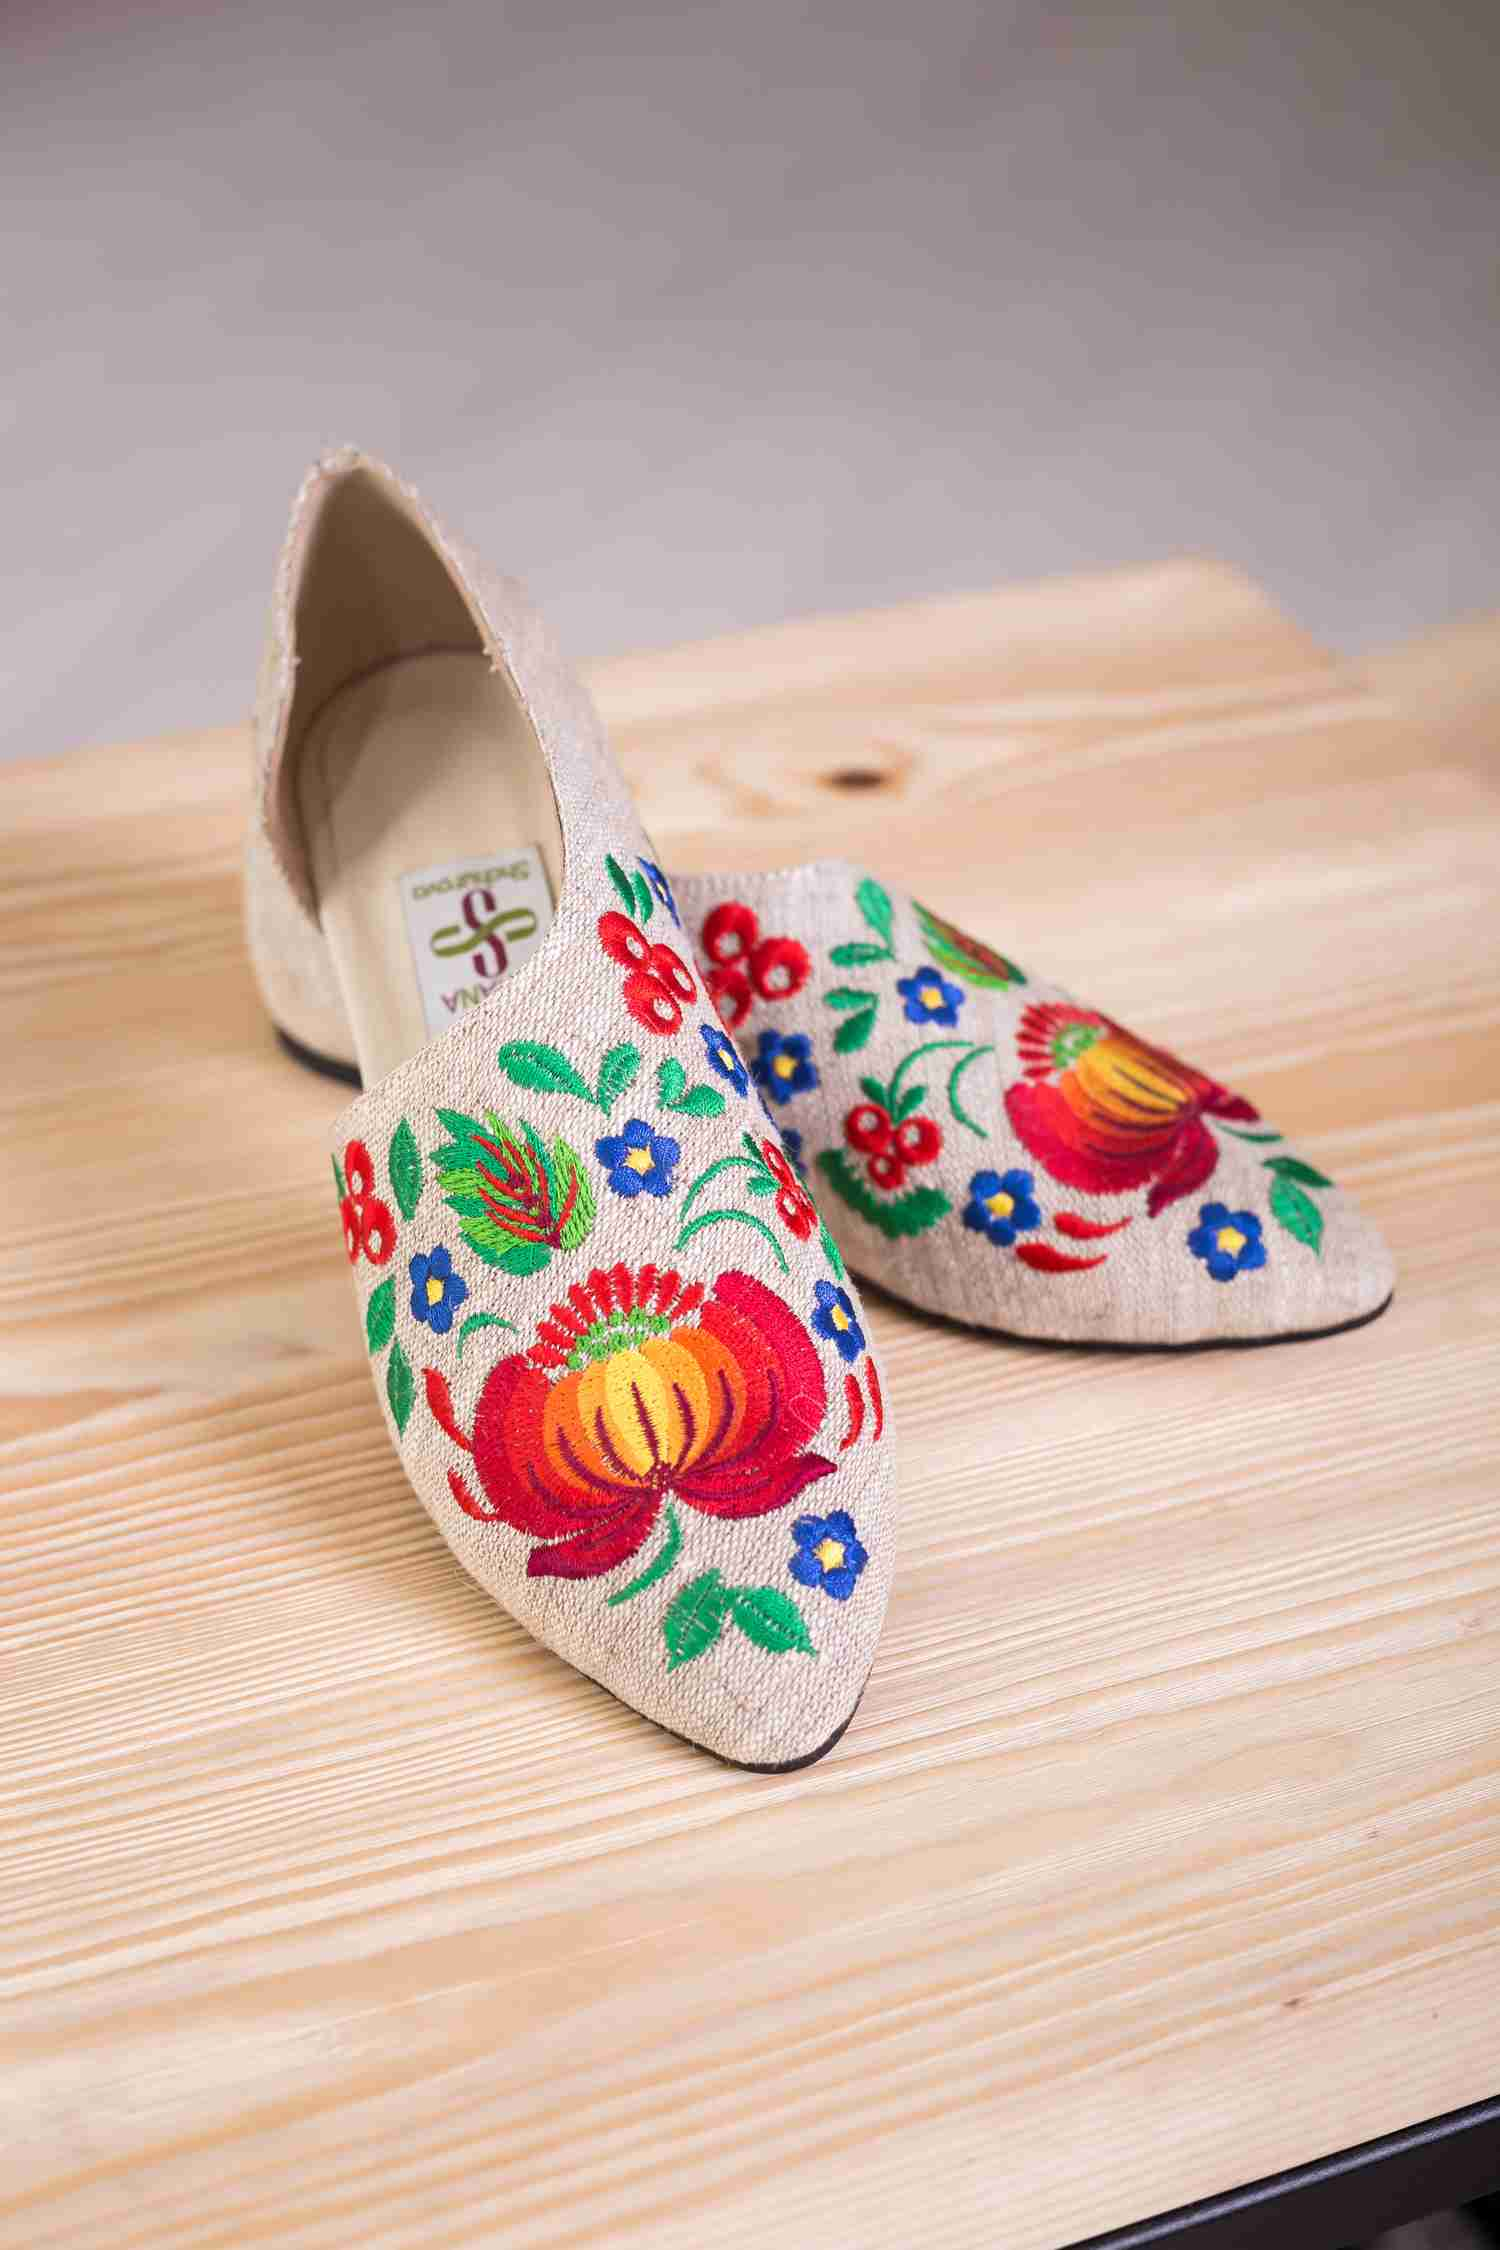 floral embroidery shoes